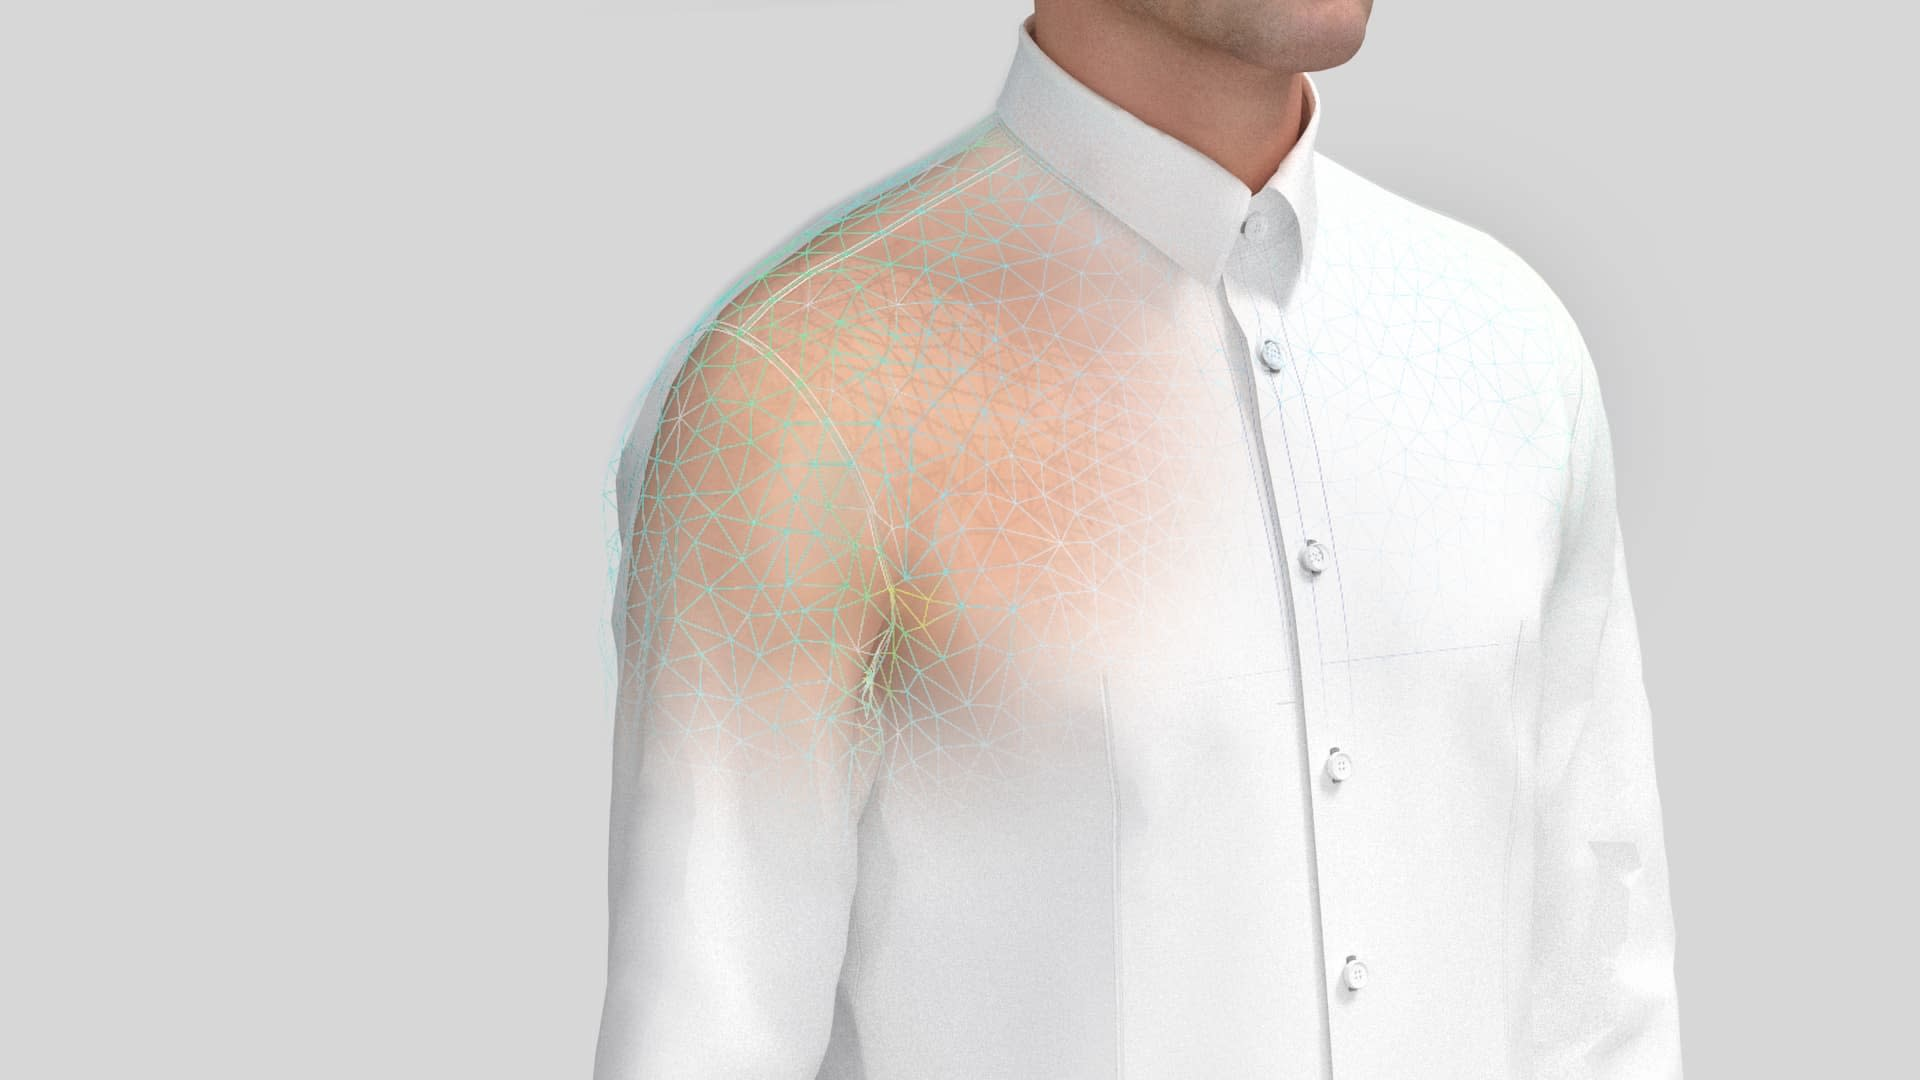 — Interactivity to Increase Customer Engagement in the Garment Customisation Process